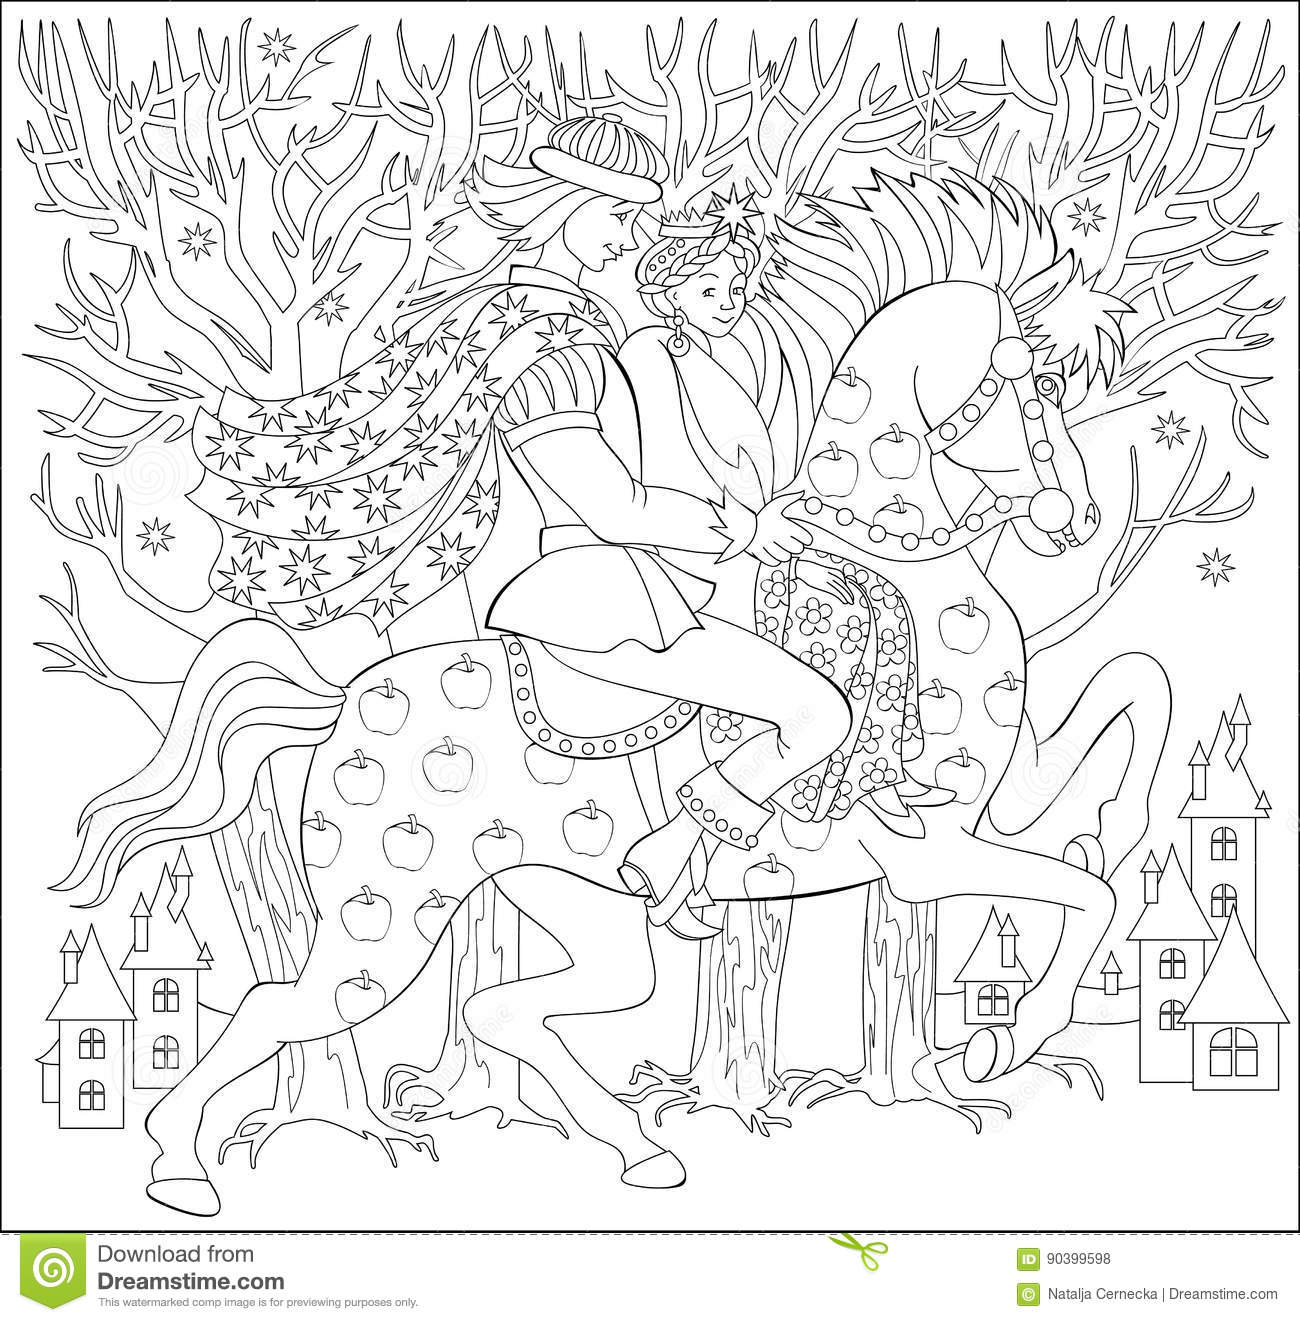 Black And White Illustration Of Prince And Princes Riding